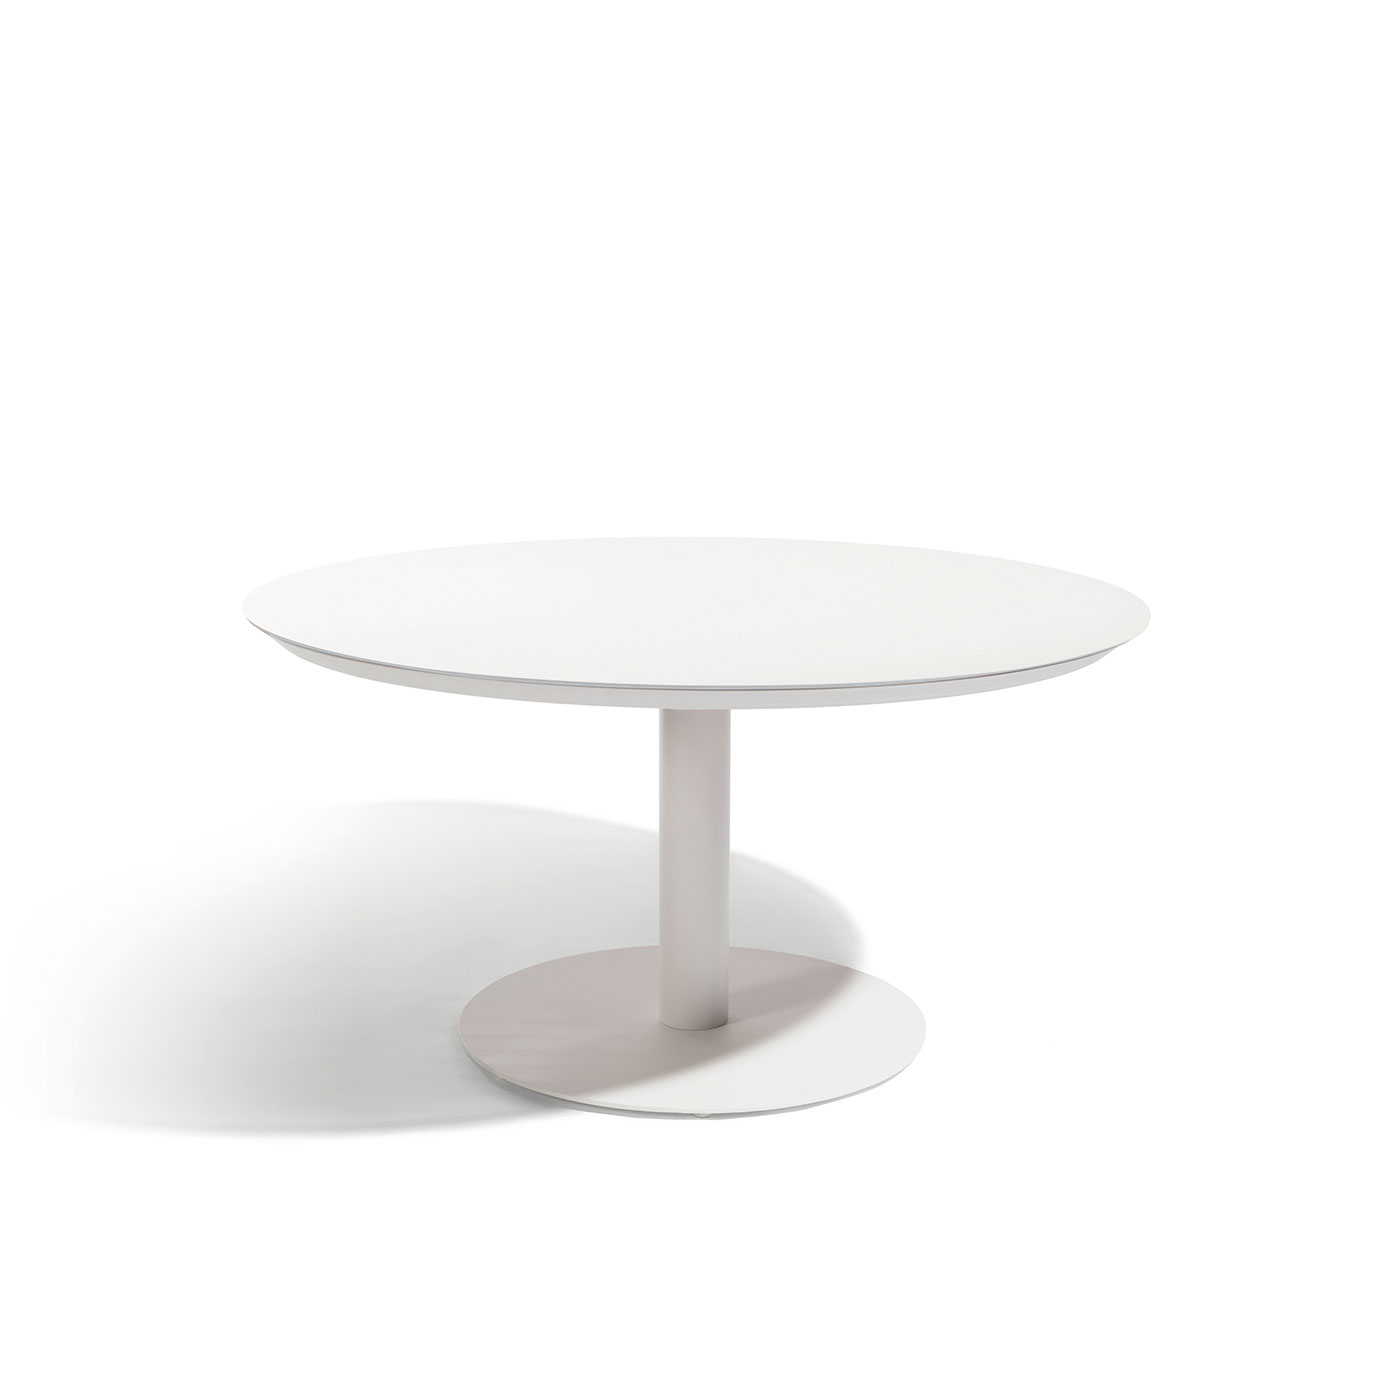 Alexa Round Dining Table